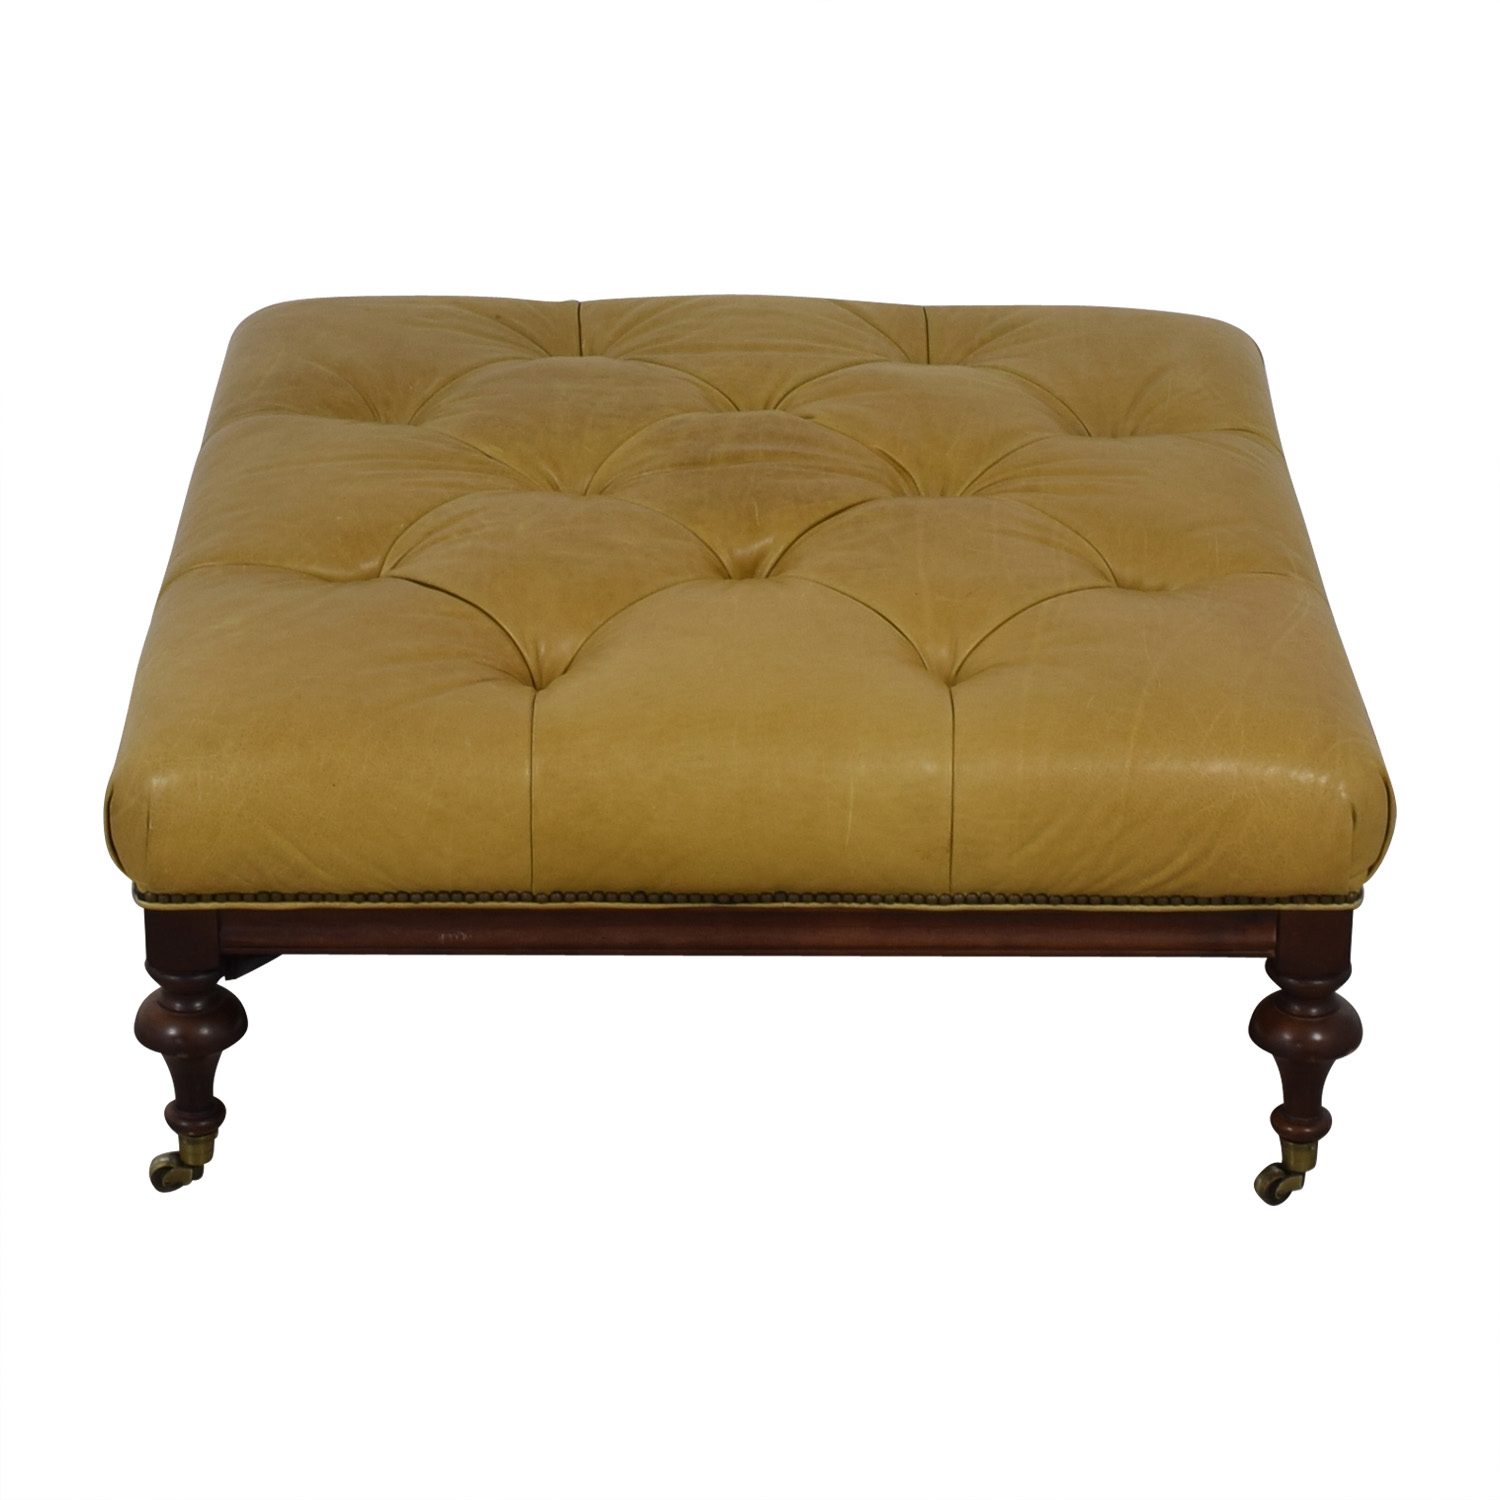 Beige Tufted Ottoman on Castors dimensions